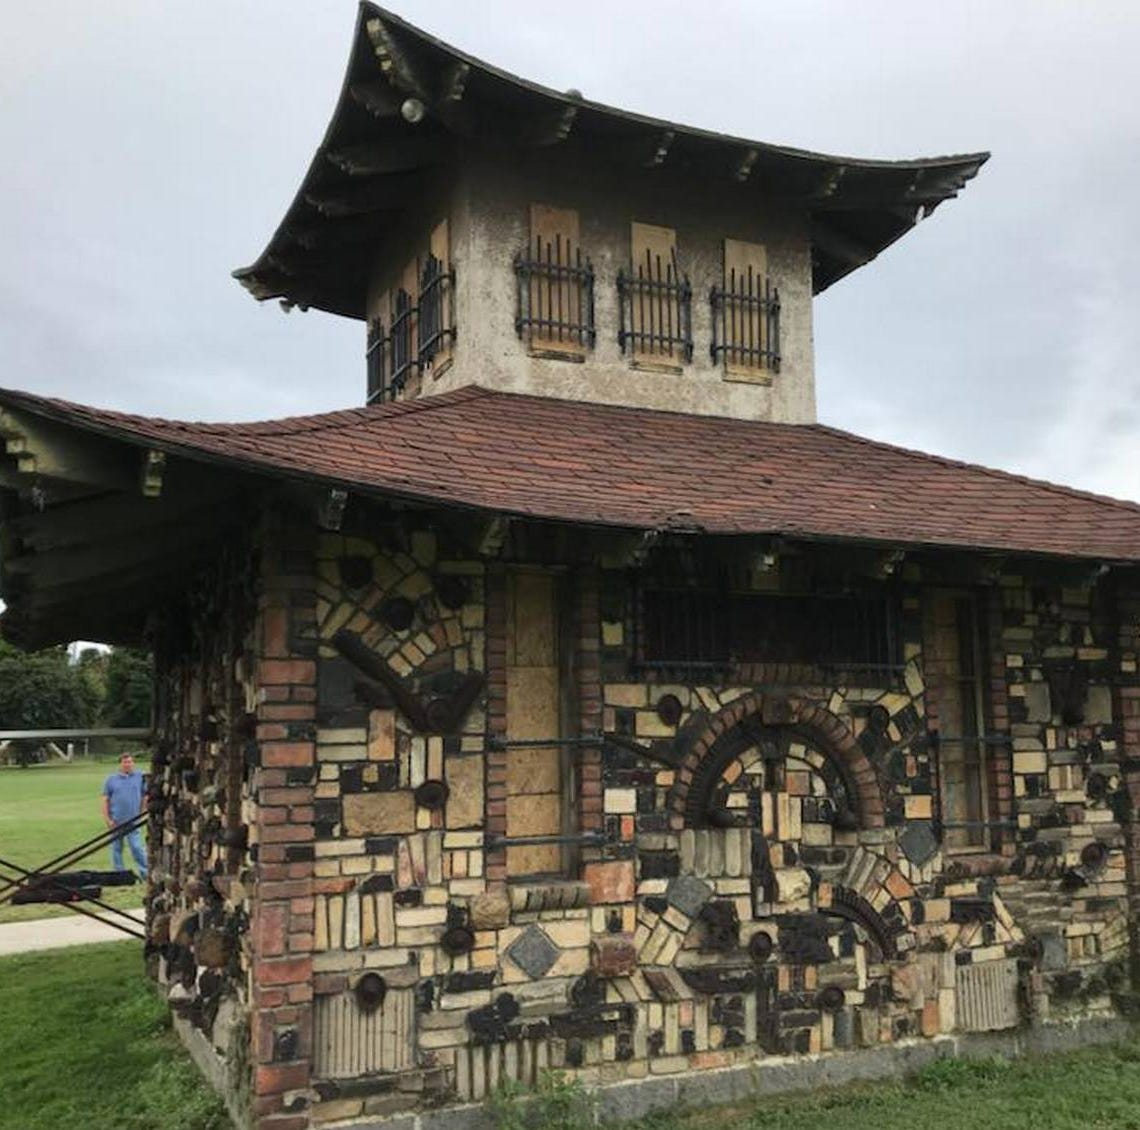 Spanning Time: A unique piece of Endicott Johnson history is returning to life